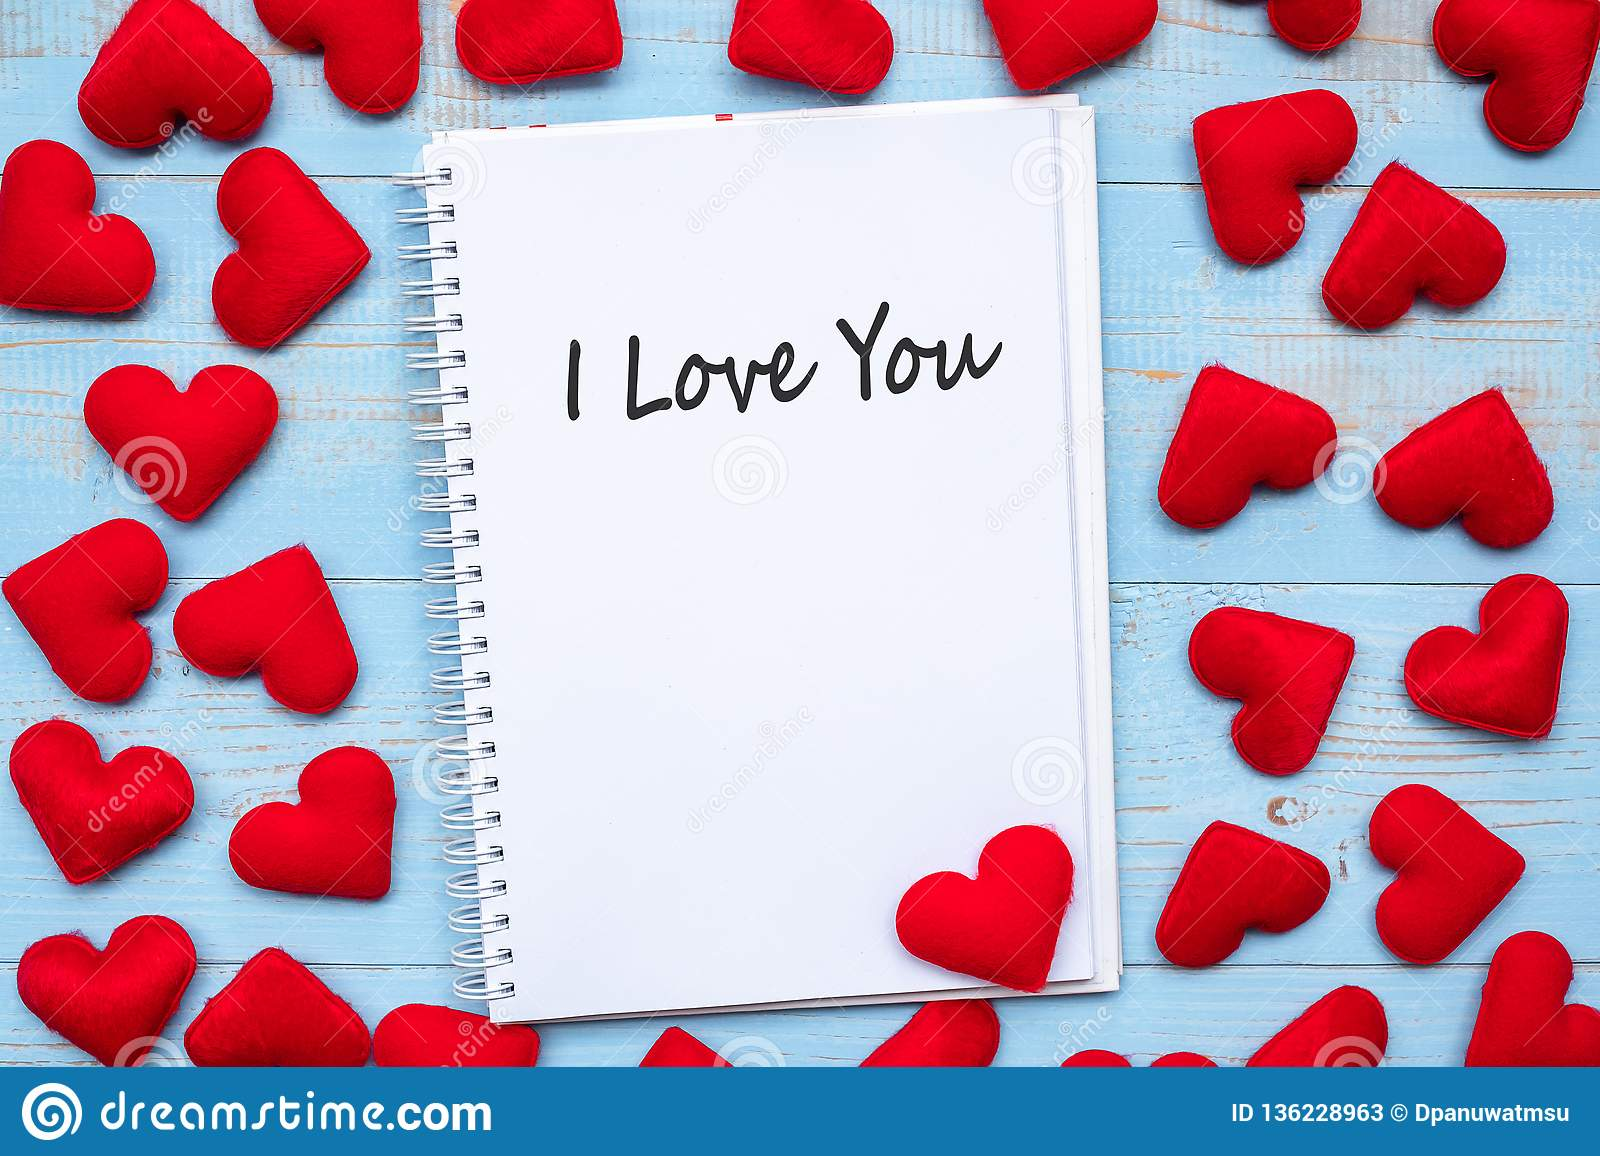 I LOVE YOU word on notebook with pink heart shape decoration on blue wooden table background. Wedding, Romantic and Happy